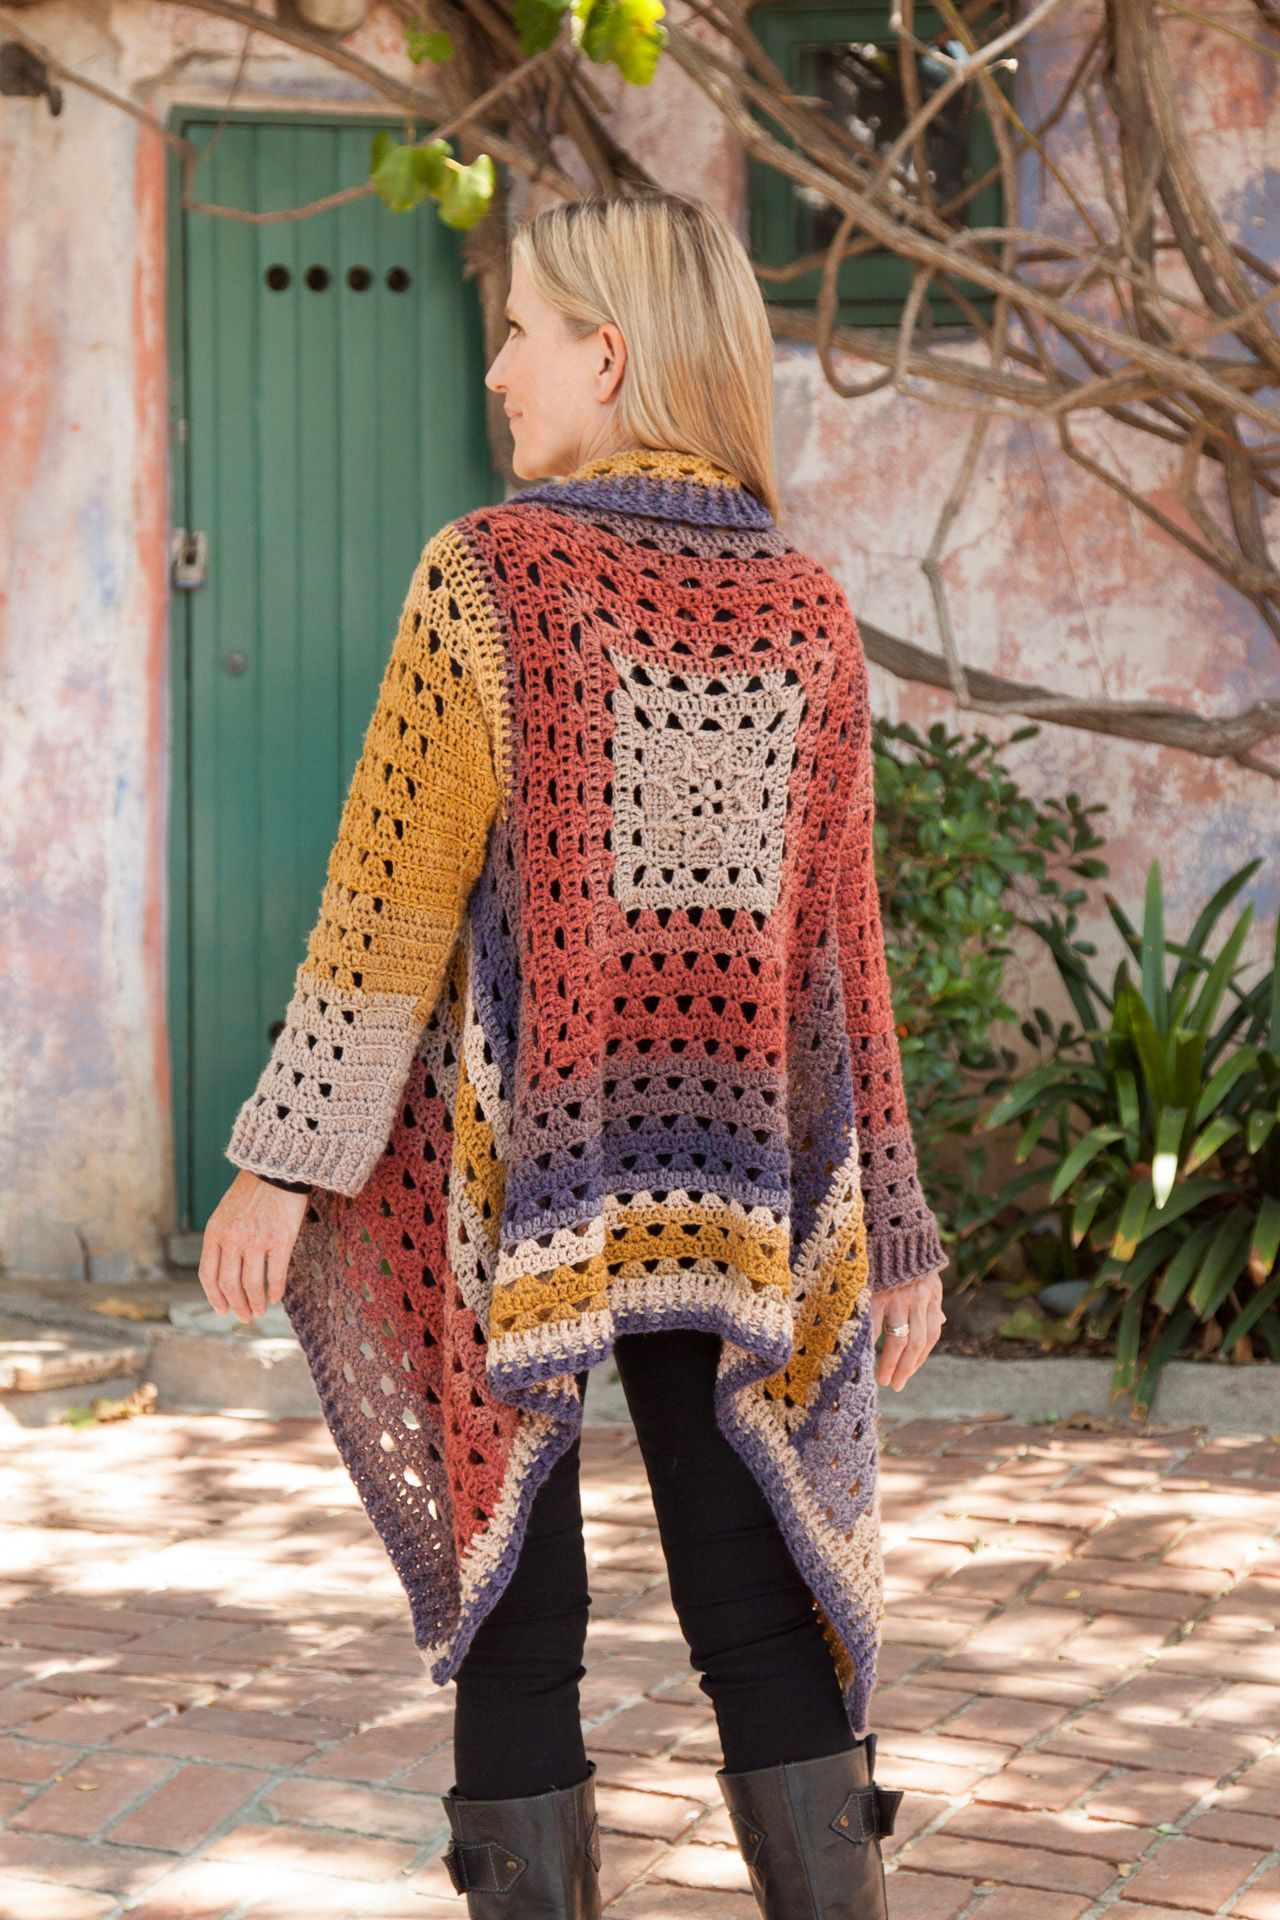 Annies Signature Autumn Glow Crochet Pattern Collection Seasonal